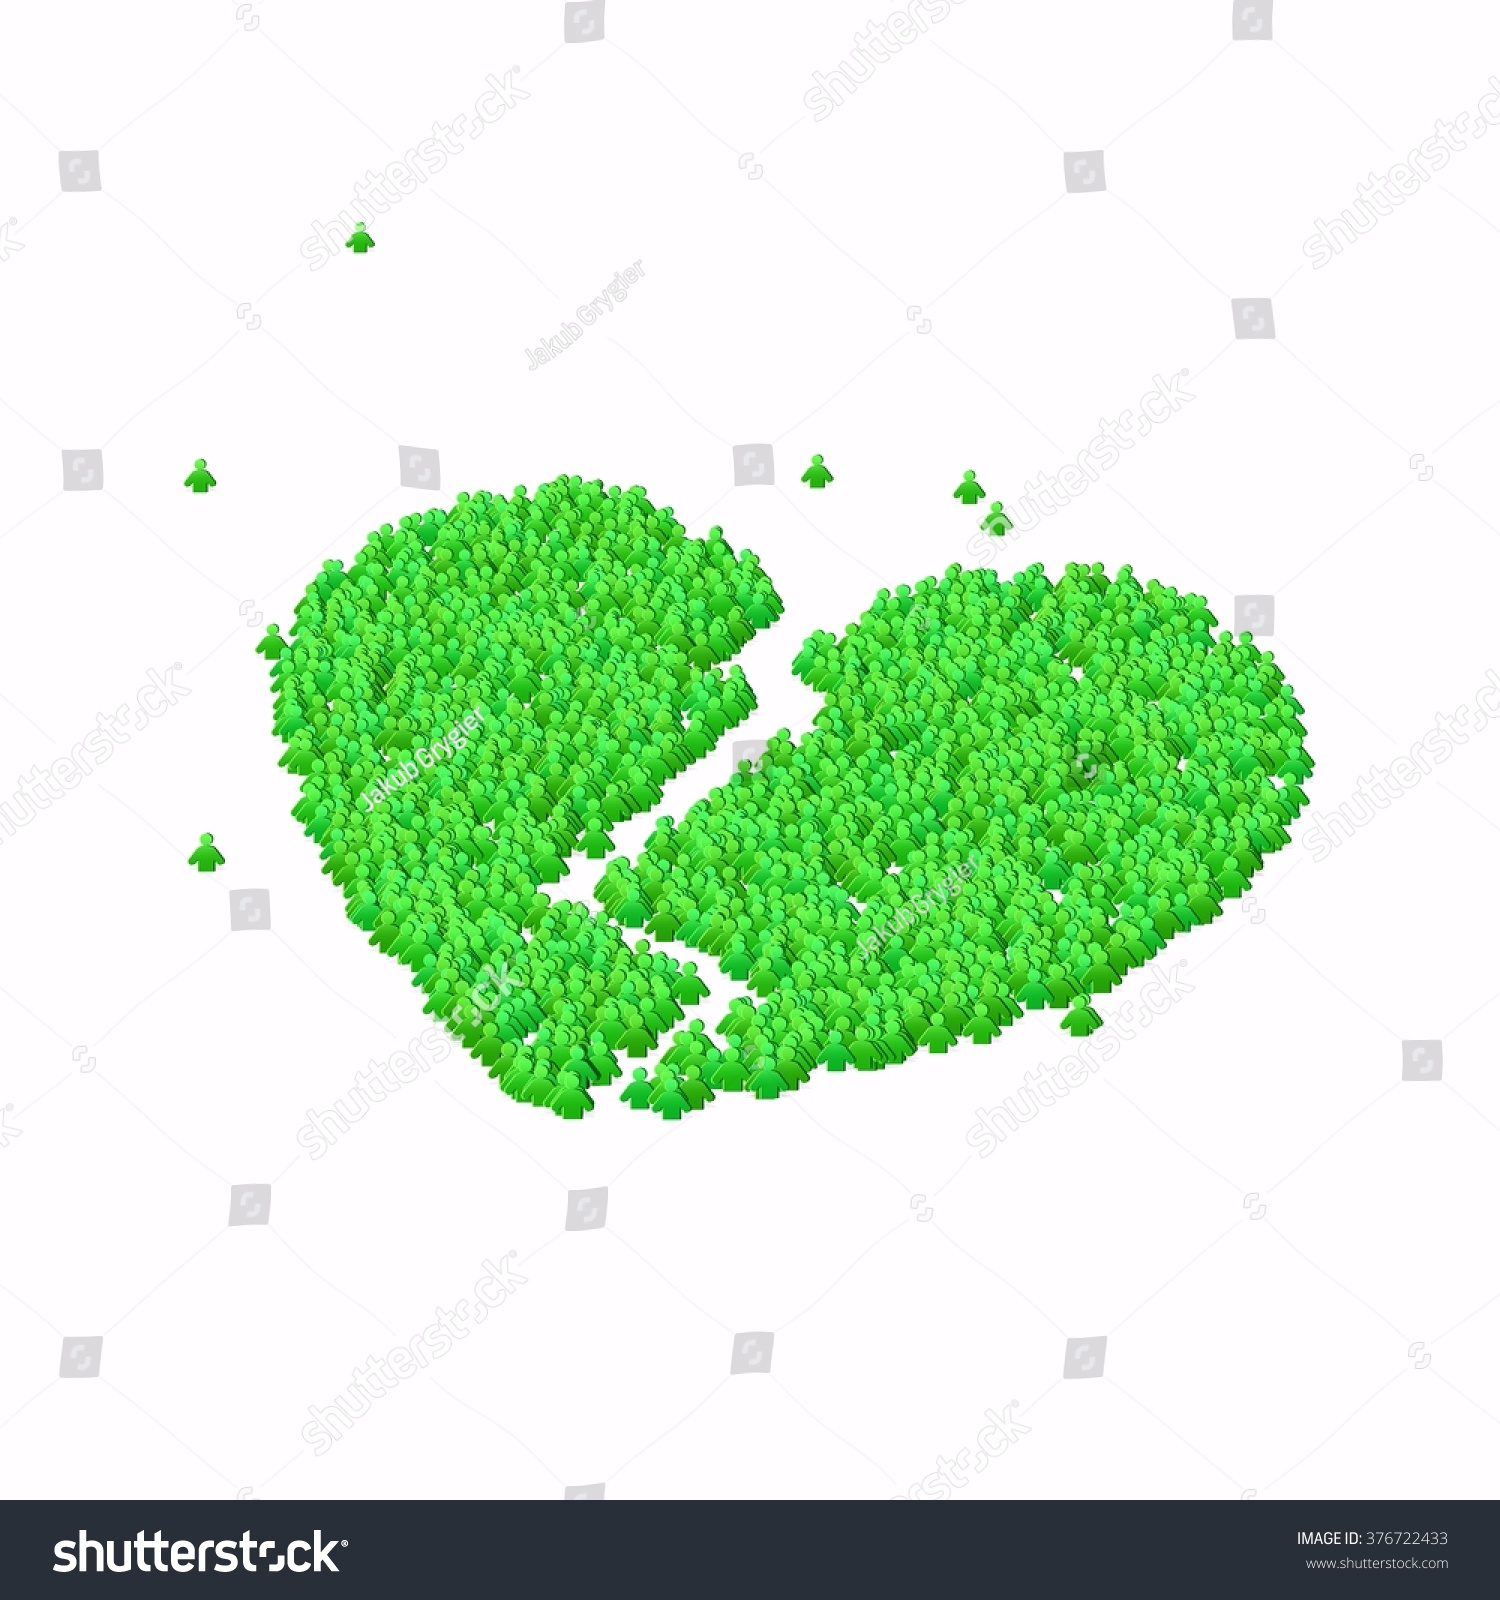 Broken heart symbol glyph out tiny stock illustration 376722433 broken heart symbol glyph out of tiny textures particles representing human and his emotions buycottarizona